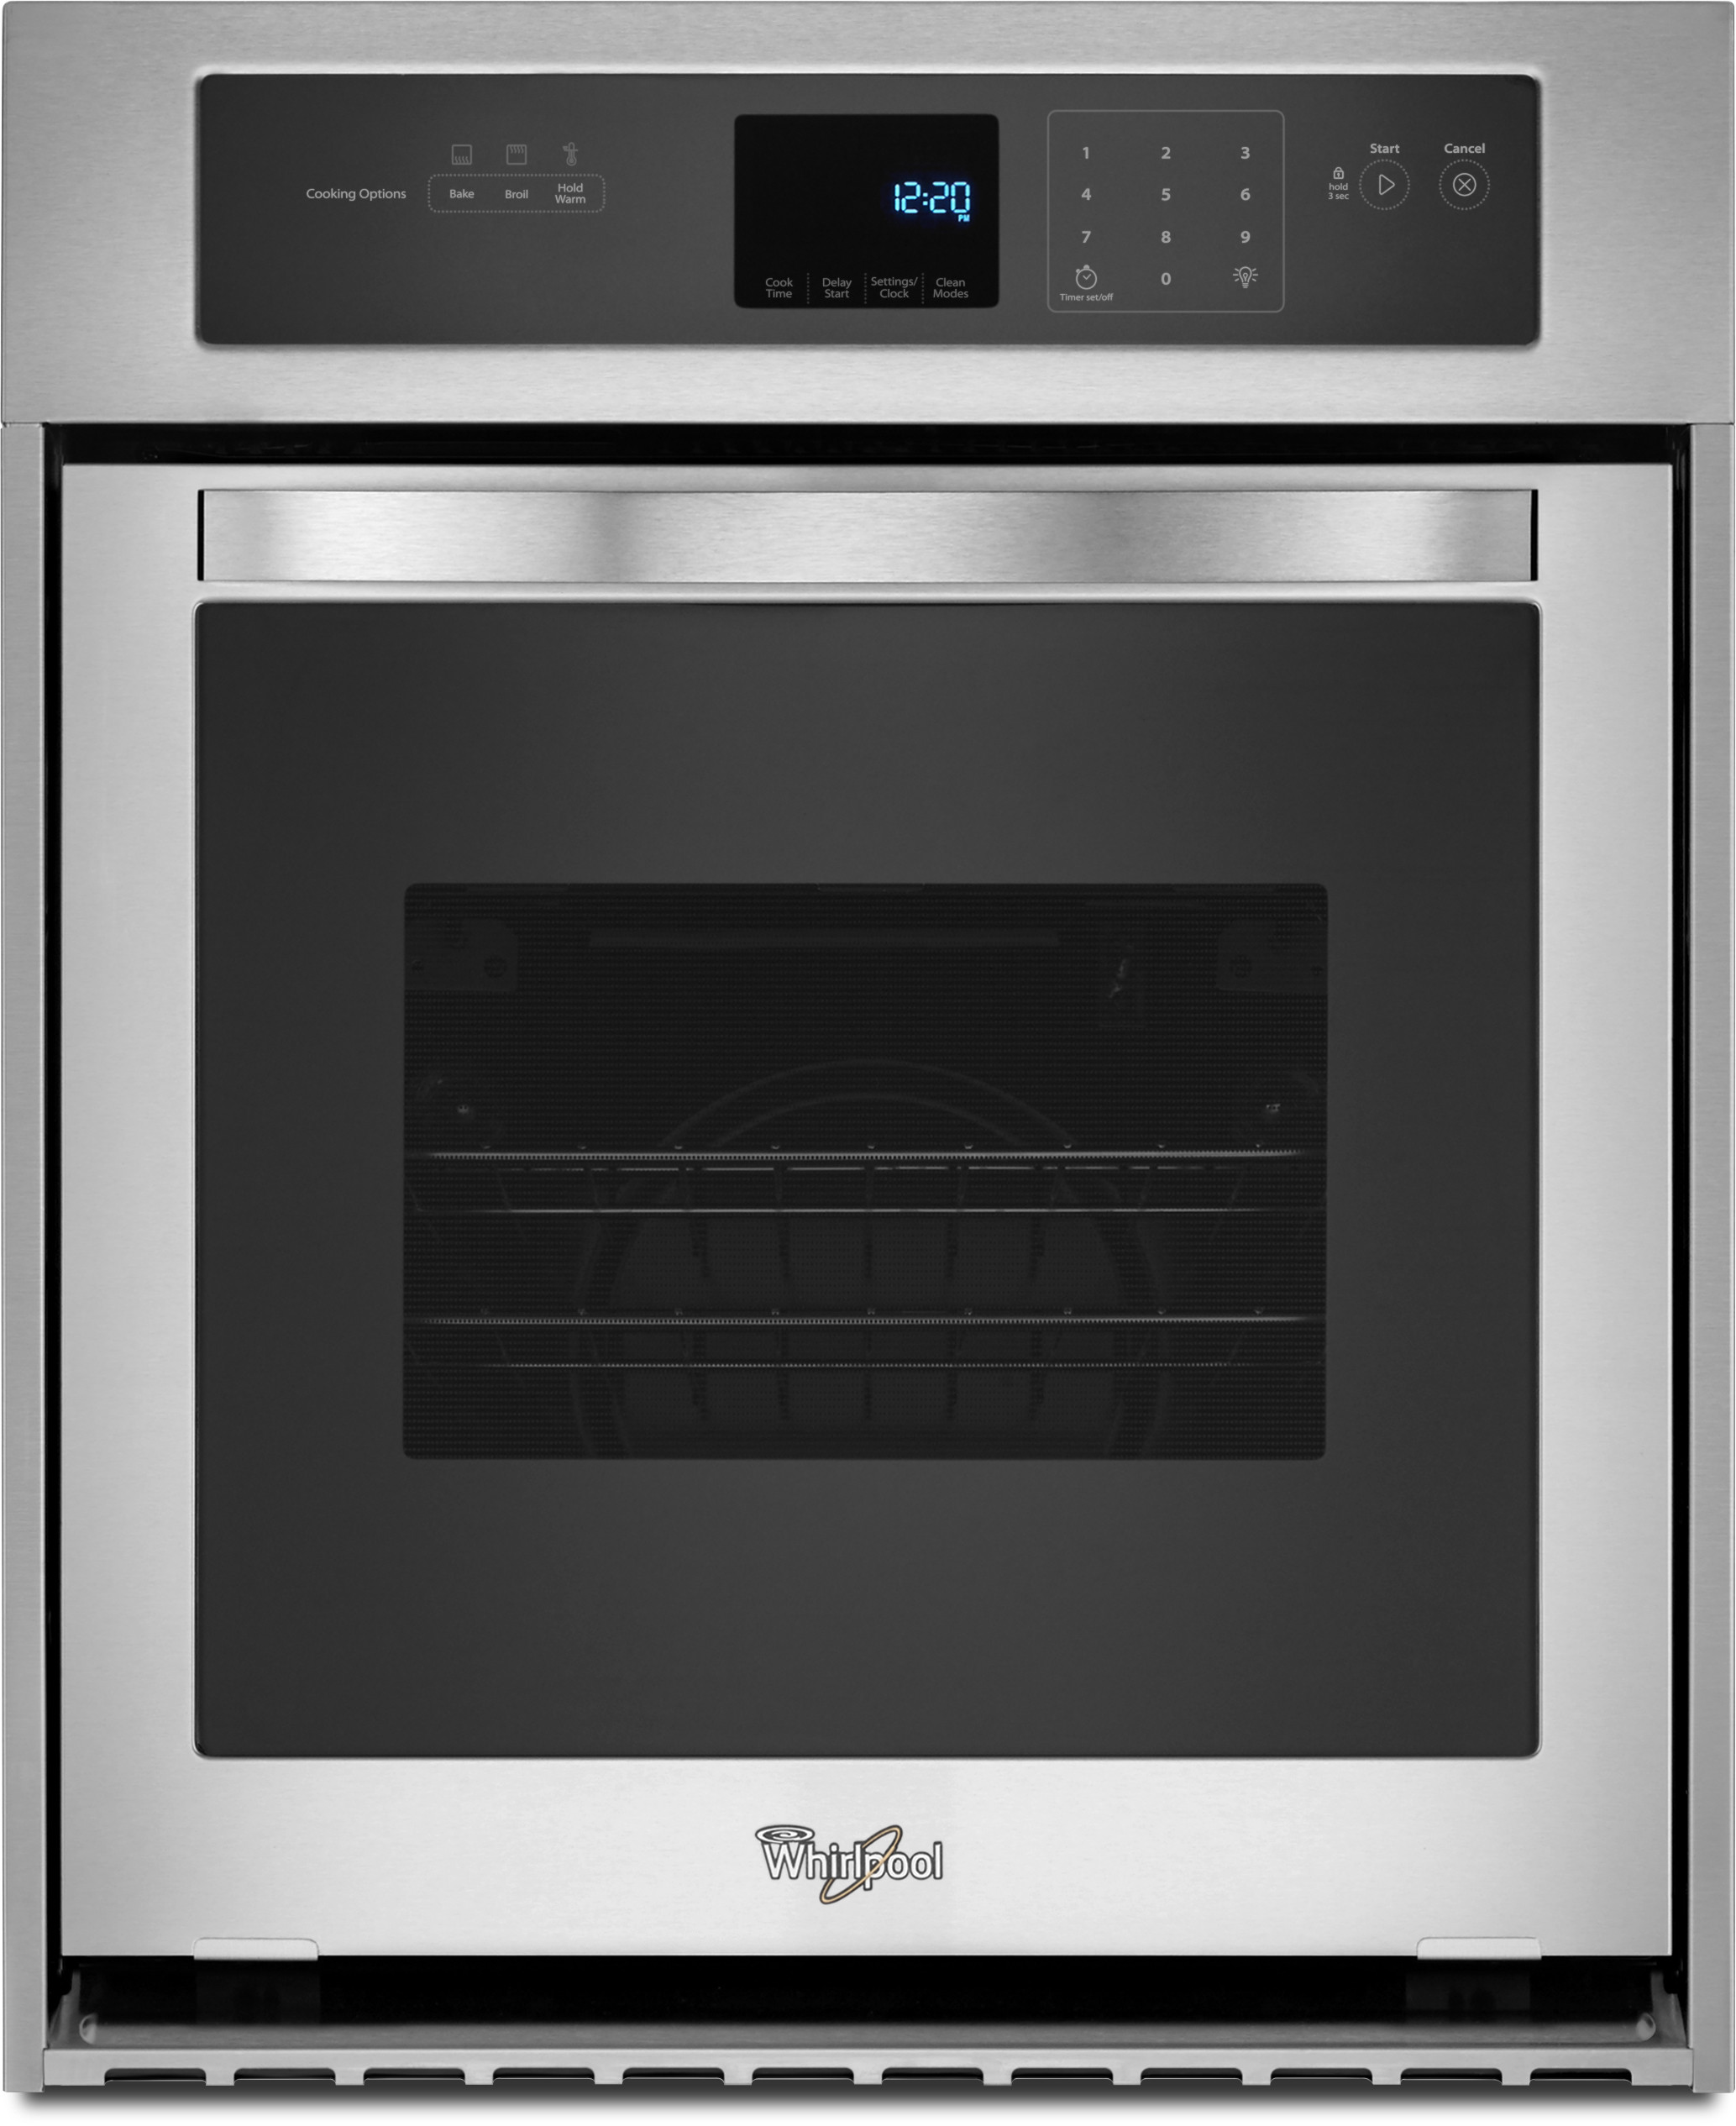 Whirlpool WOS51ES4ES 24 Inch Single Electric Wall Oven with 3.1 cu. ft.  Capacity, 3600 Watt Broil Element, High Heat Self-Cleaning Mode, Delay Cook  Setting, ...